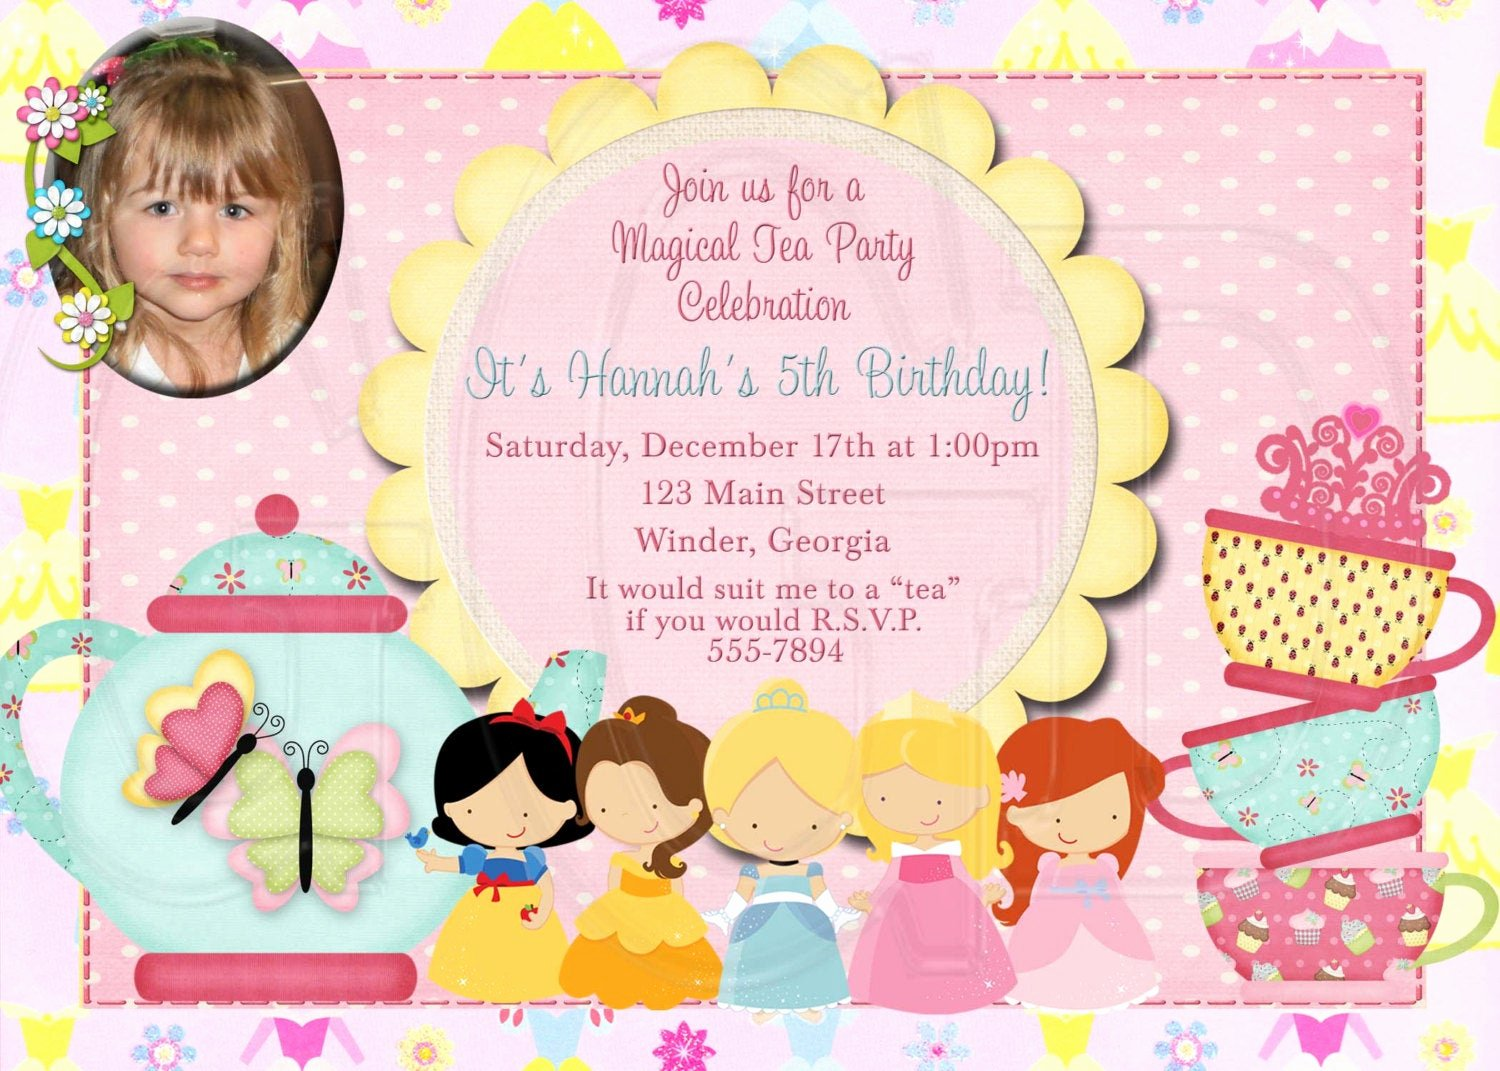 Princess Tea Party Invitations New Tea Party Invitation Birthday Princess Tea Digital File